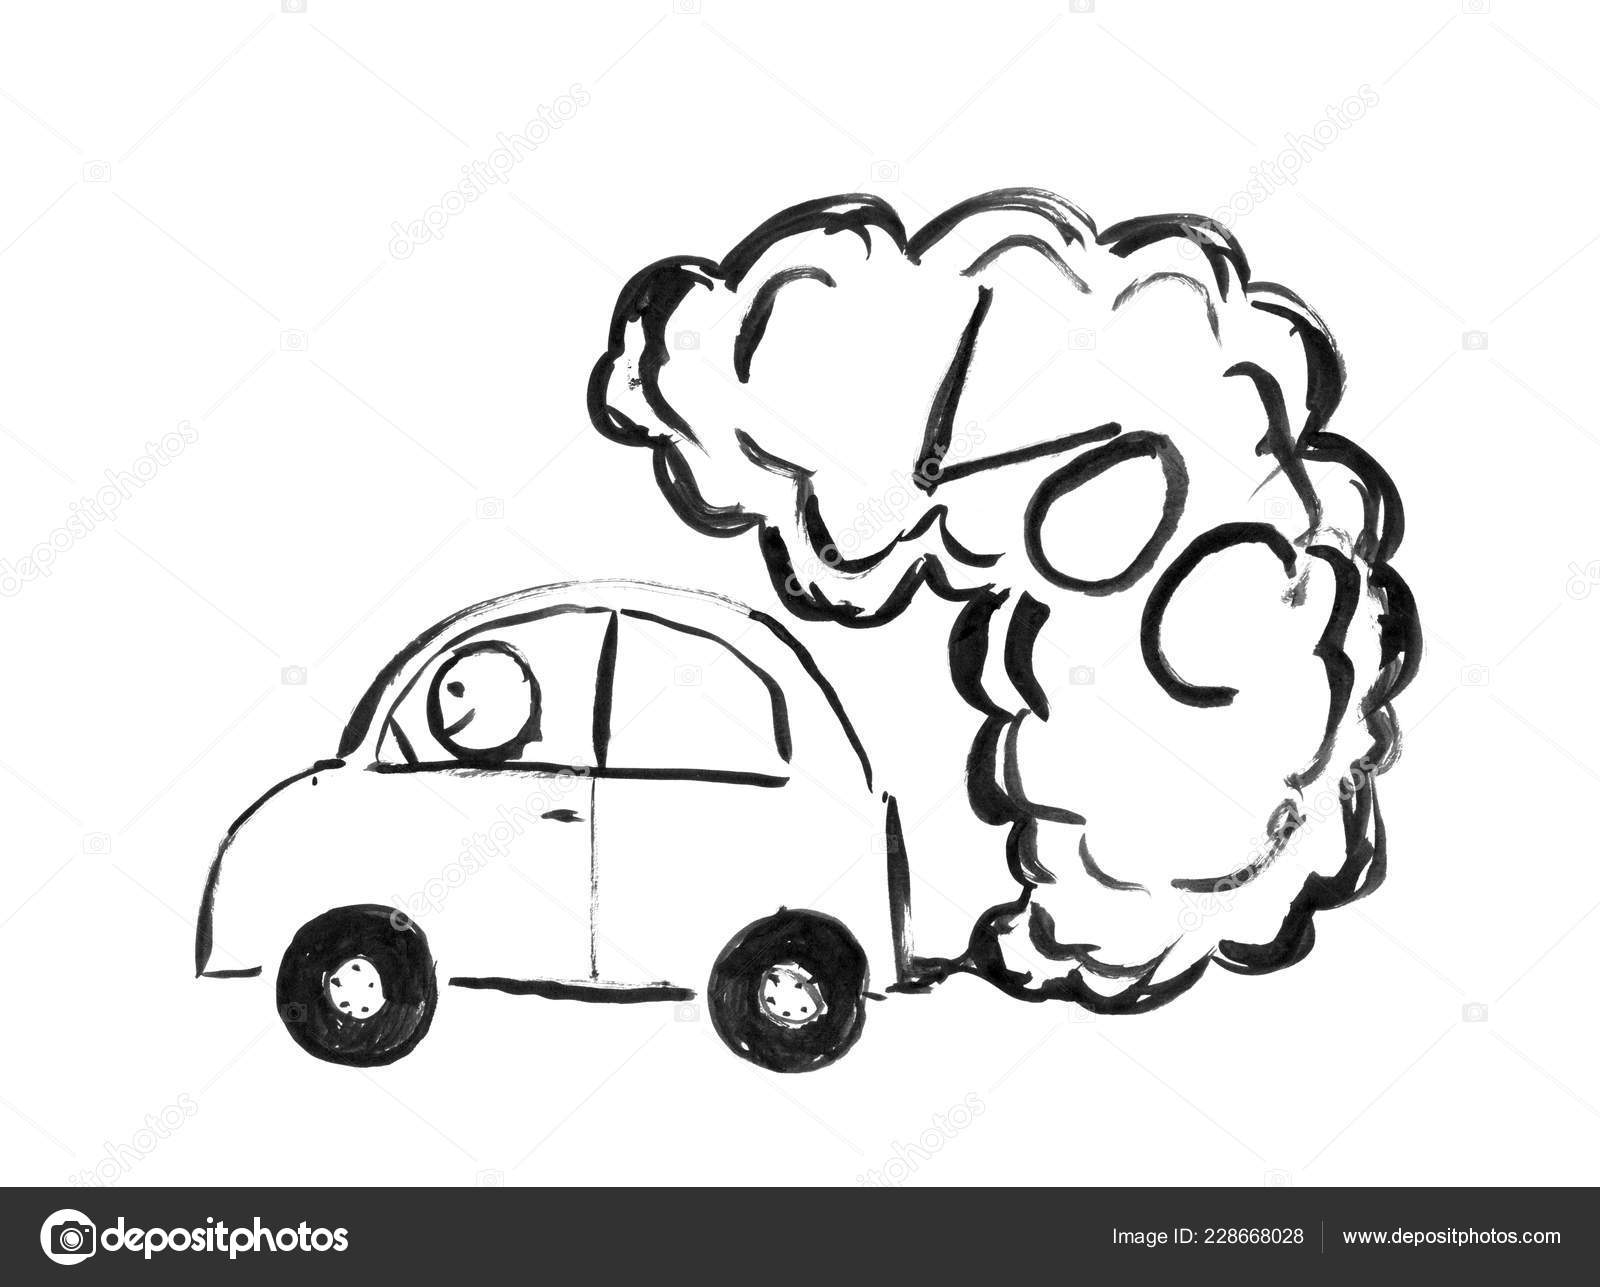 Black ink hand drawing of car producing voc air pollution